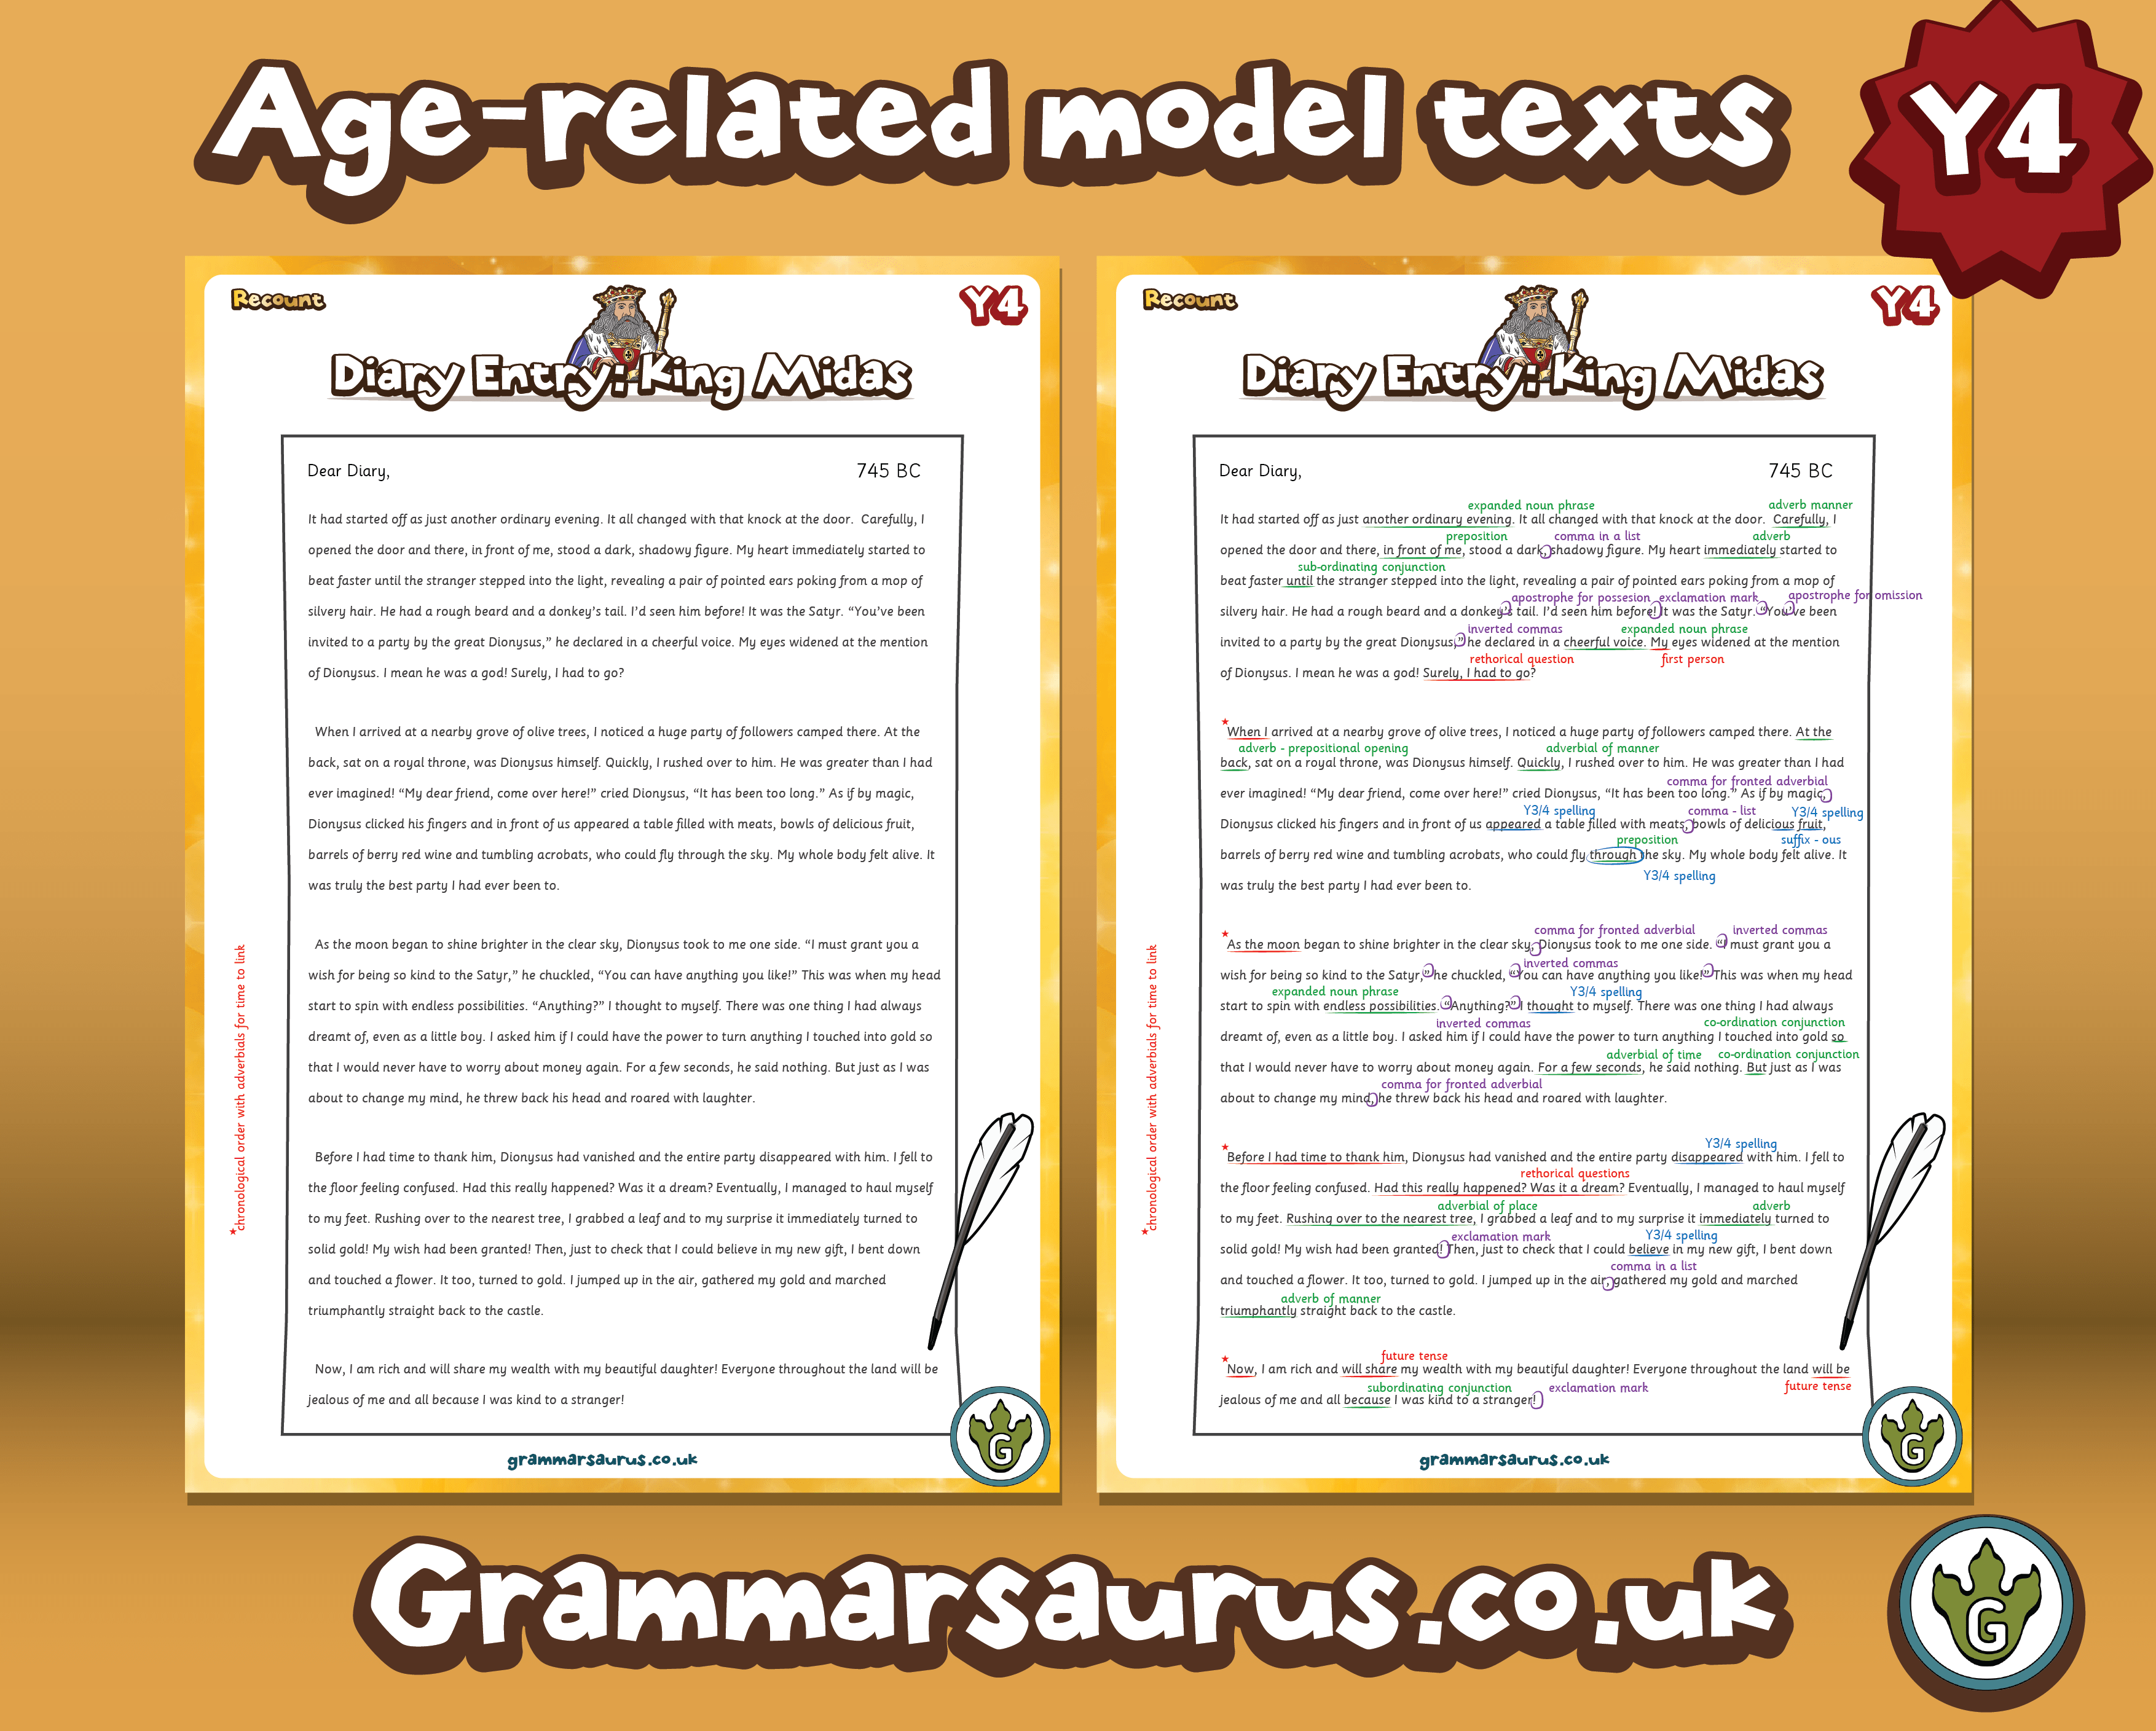 Viking Biography Ks2 Ks2 Model Texts Archives Grammarsaurus